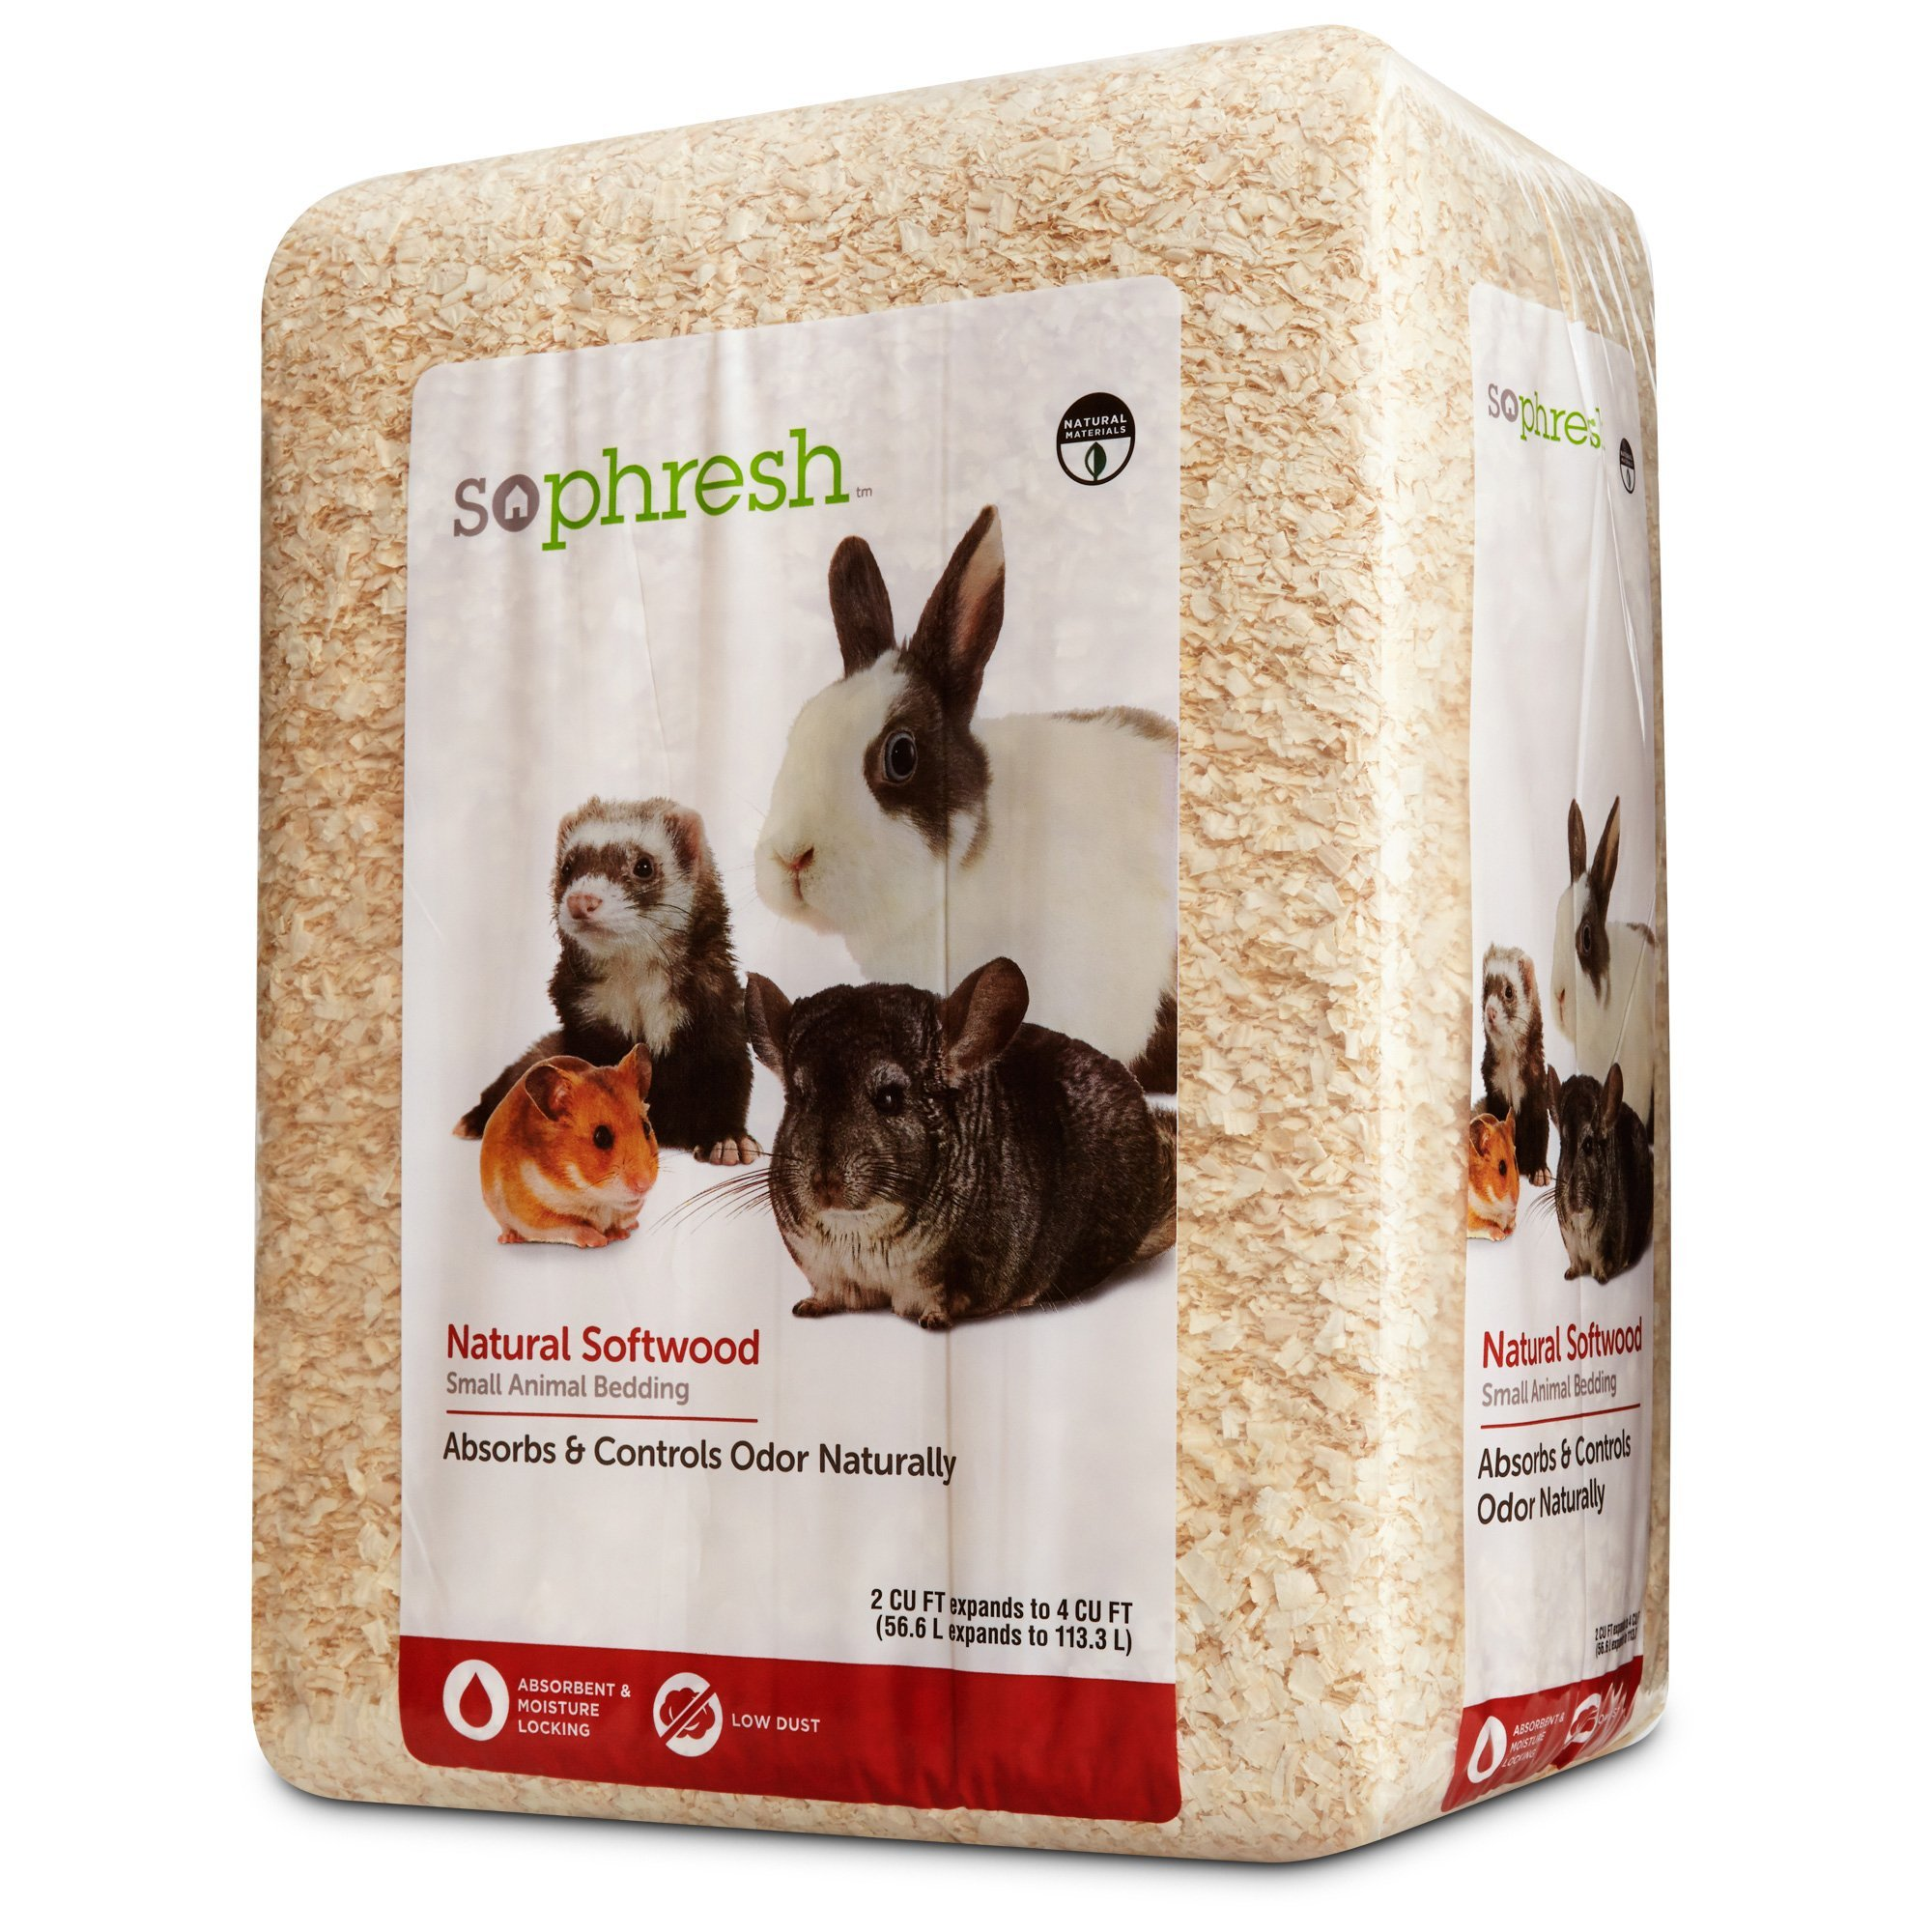 So Phresh Natural Softwood Small Animal Bedding, 56.6 Liters (500 cu. in.) by So Phresh